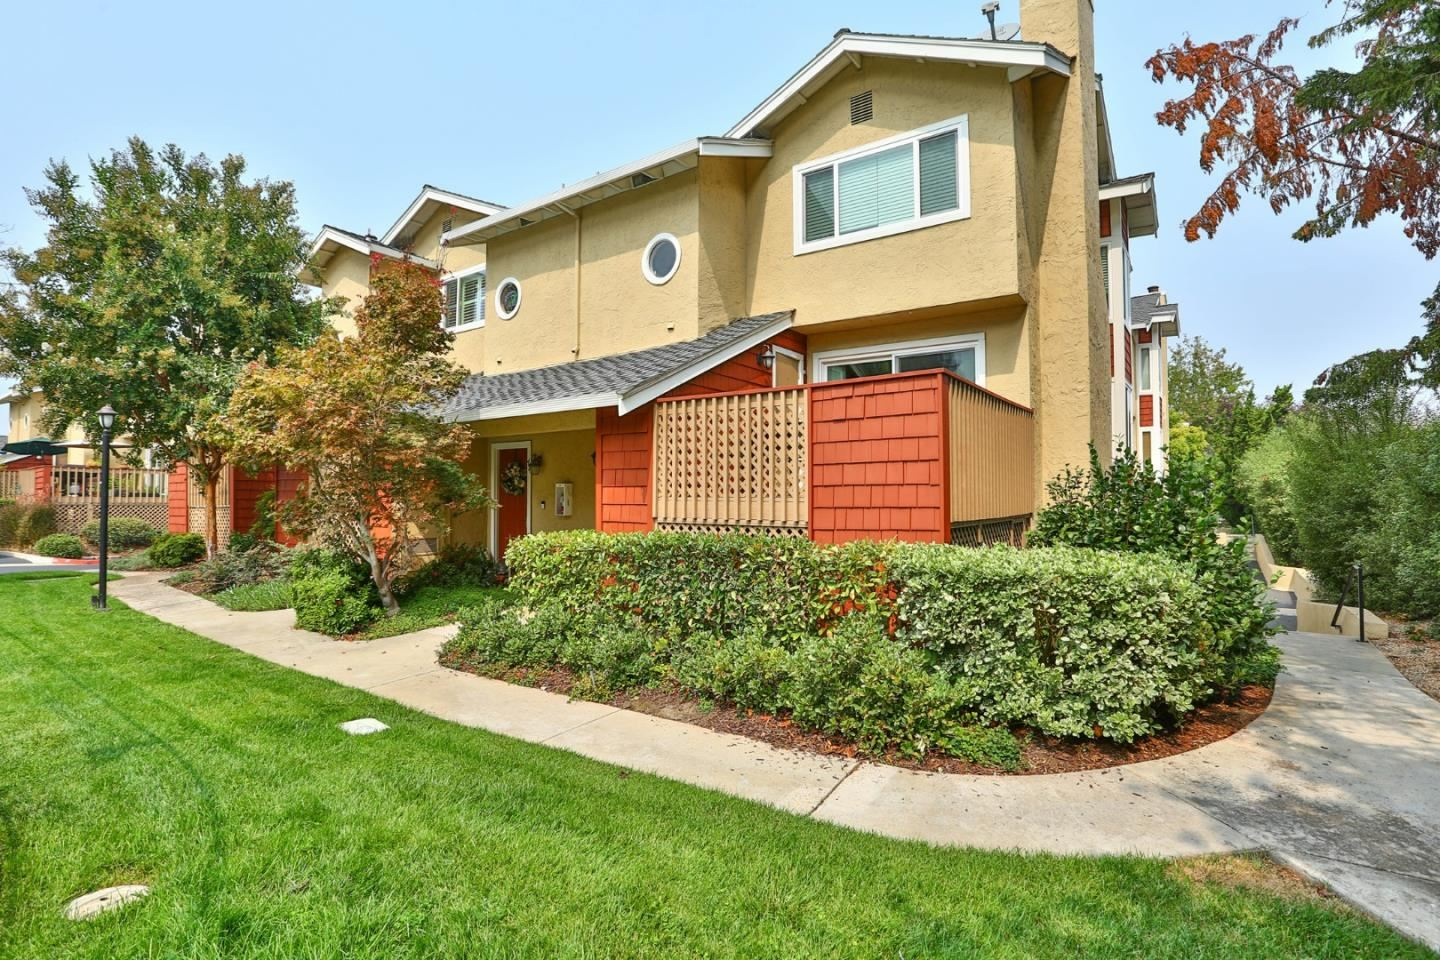 Photo for 44 Sanderling CT, CAMPBELL, CA 95008 (MLS # ML81810742)